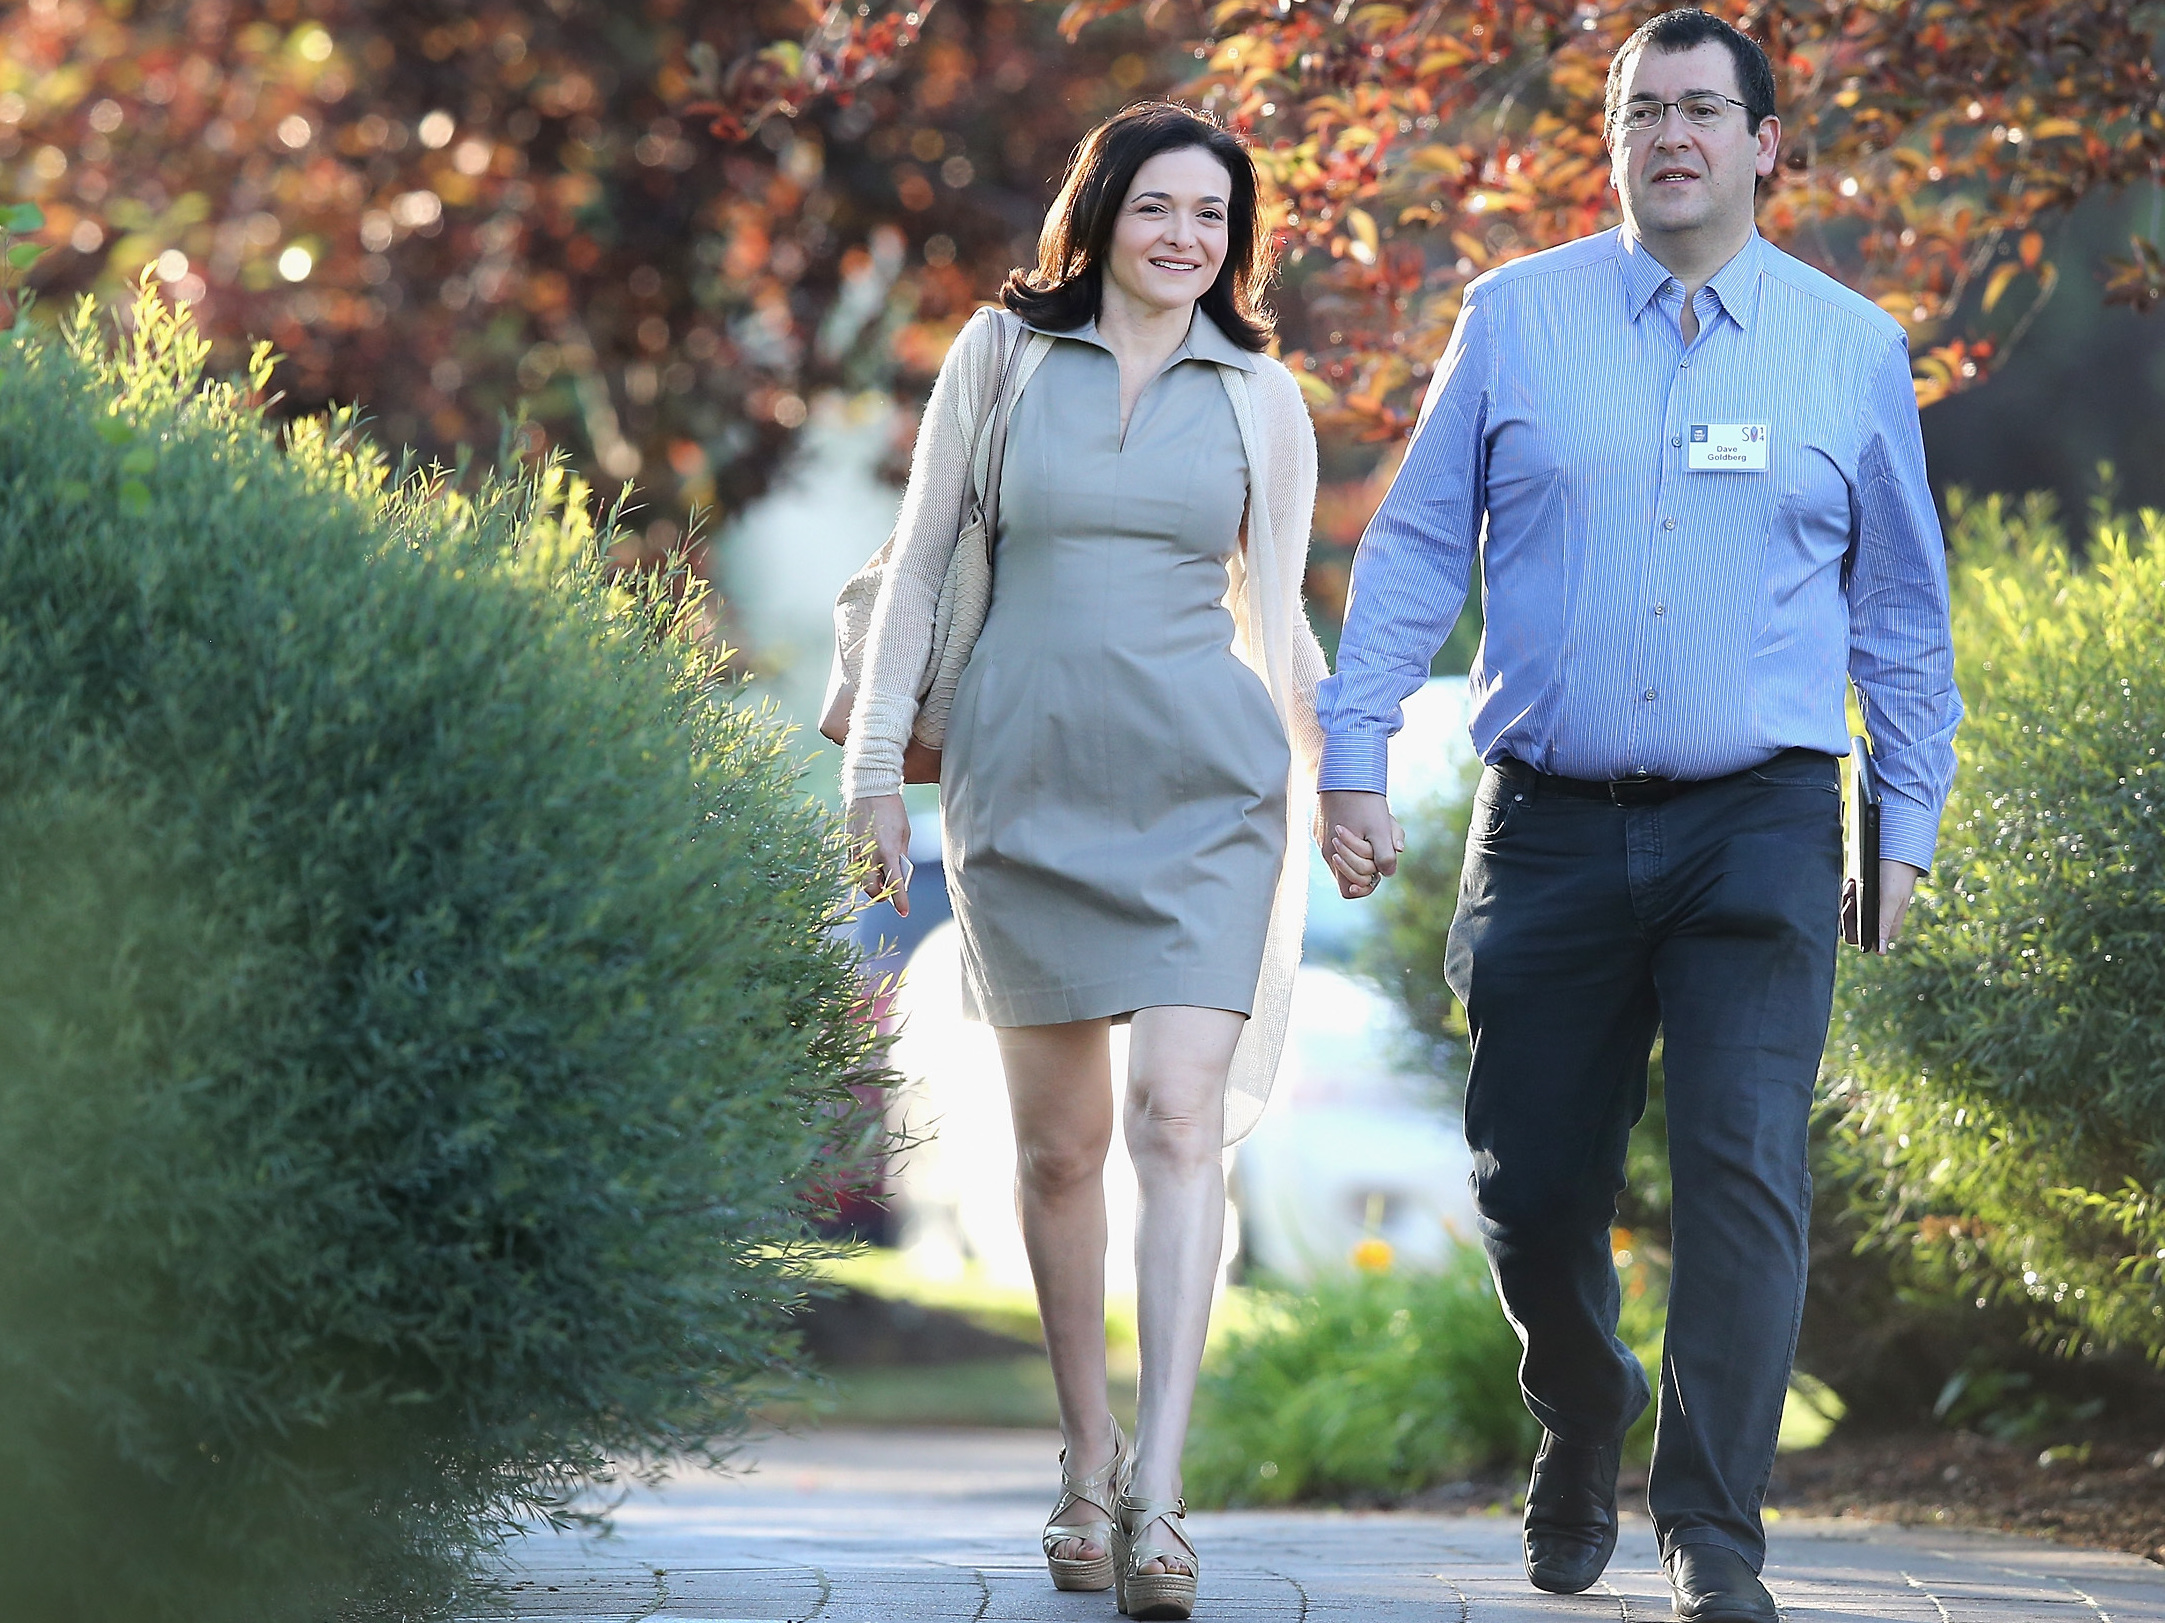 Sandberg and her husband Dave Goldberg, then-CEO of SurveyMonkey, attend a 2014 conference in Sun Valley, Idaho.     (Scott Olson/Getty Images)